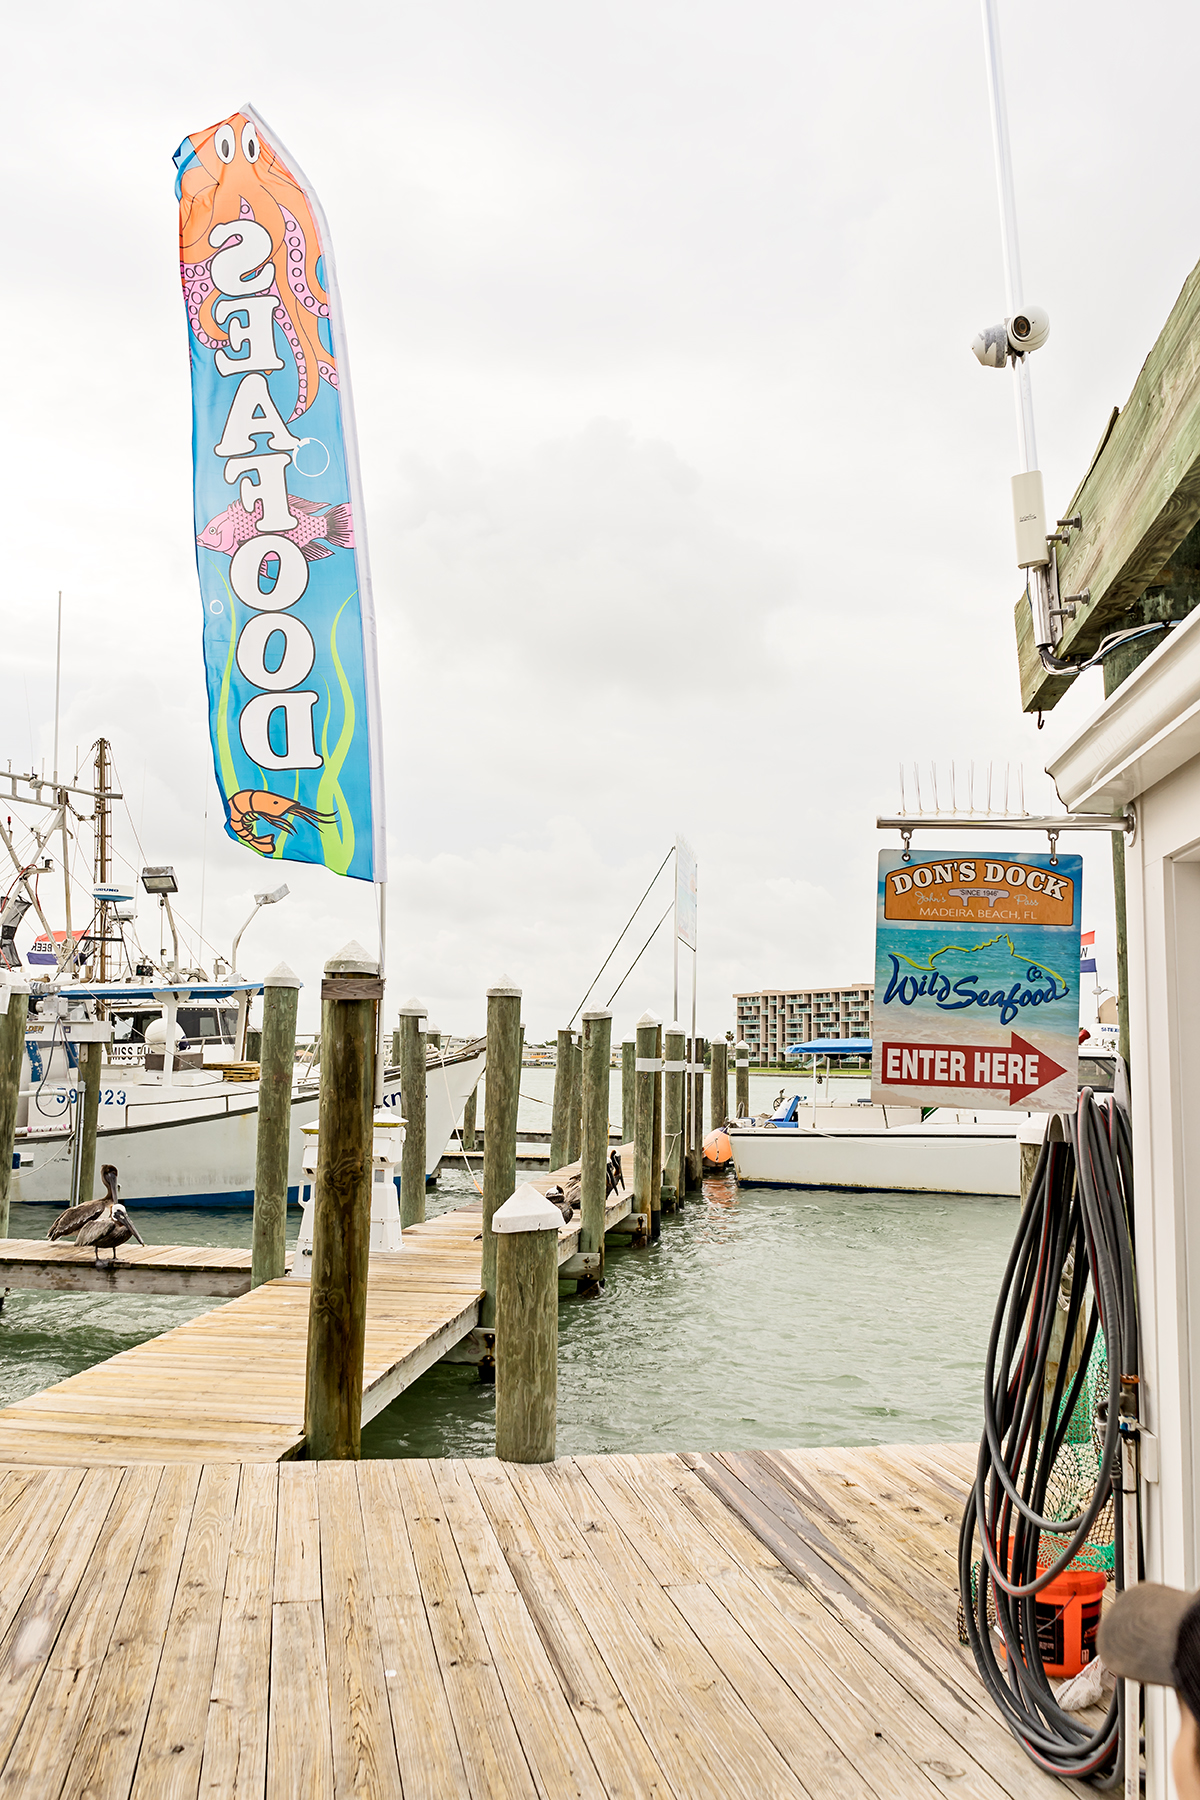 Wild Seafood also has a small store at Don's Dock.